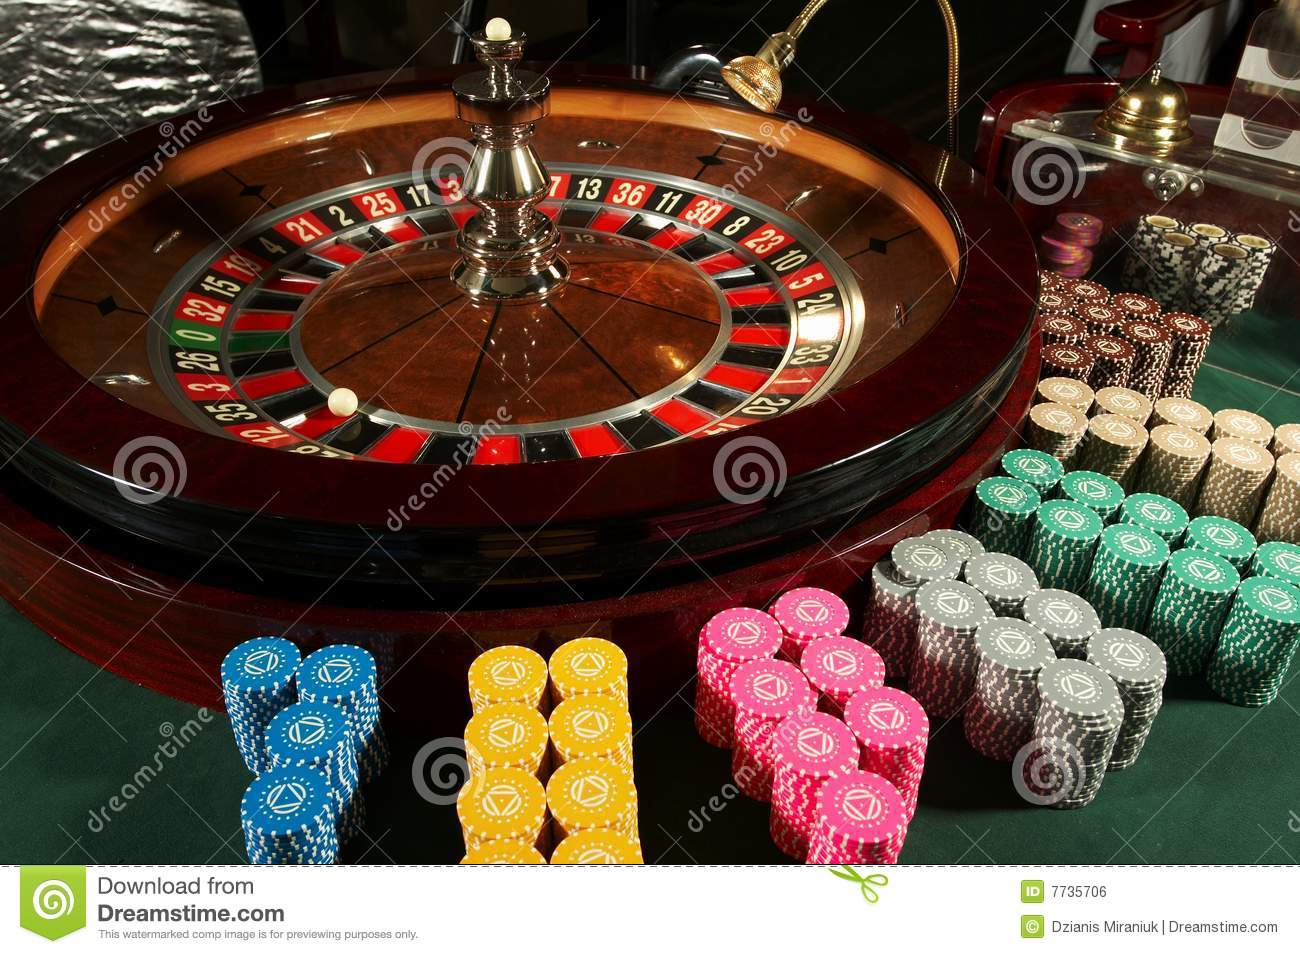 Casino with roulette tables